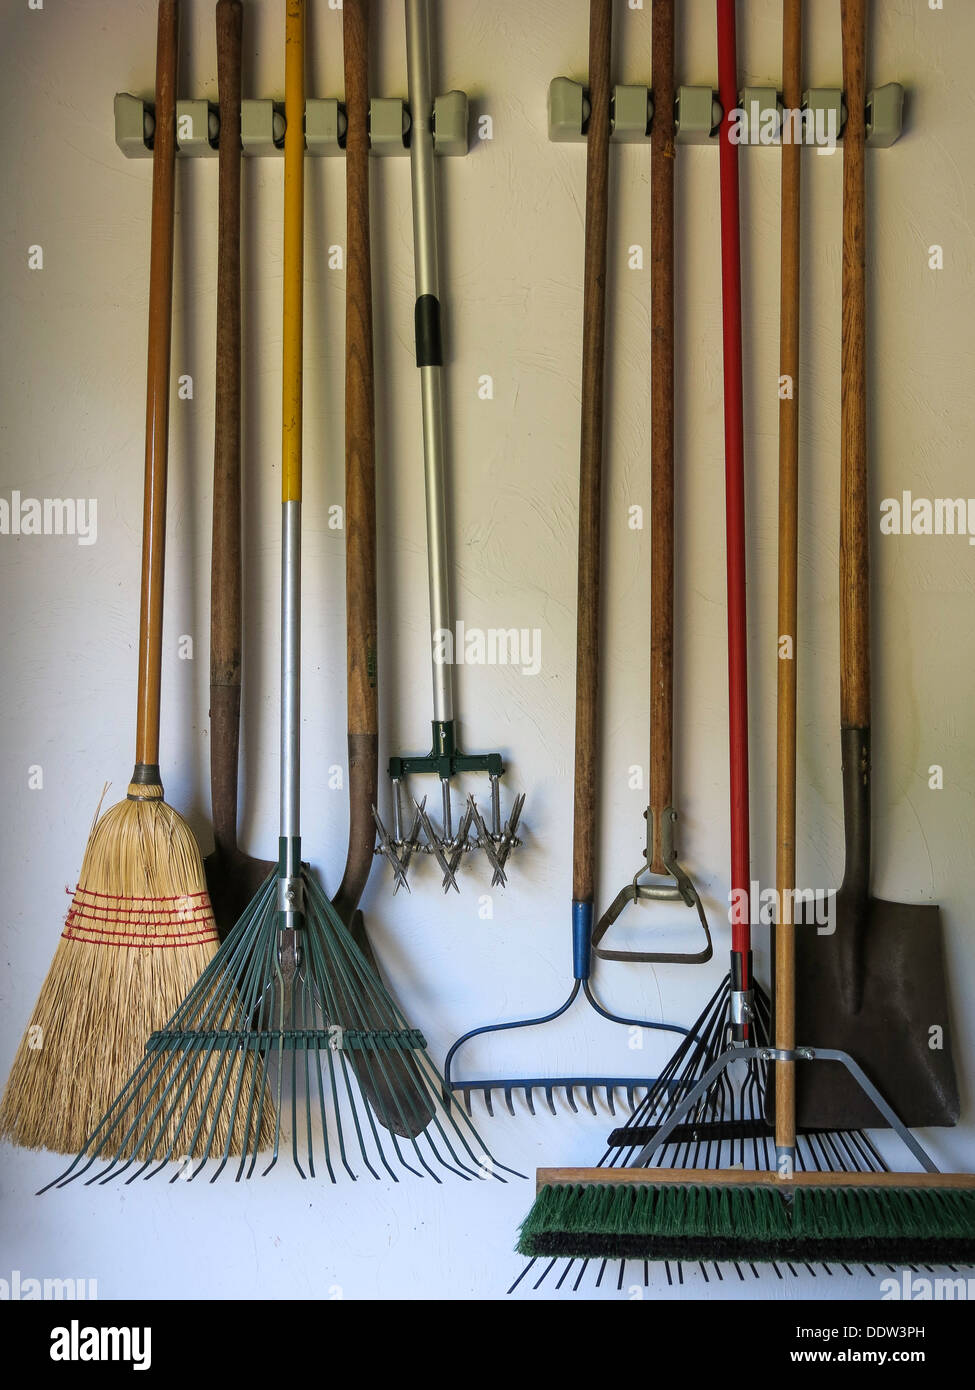 Lawn And Garden Tools Hanging In Garage, USA   Stock Image